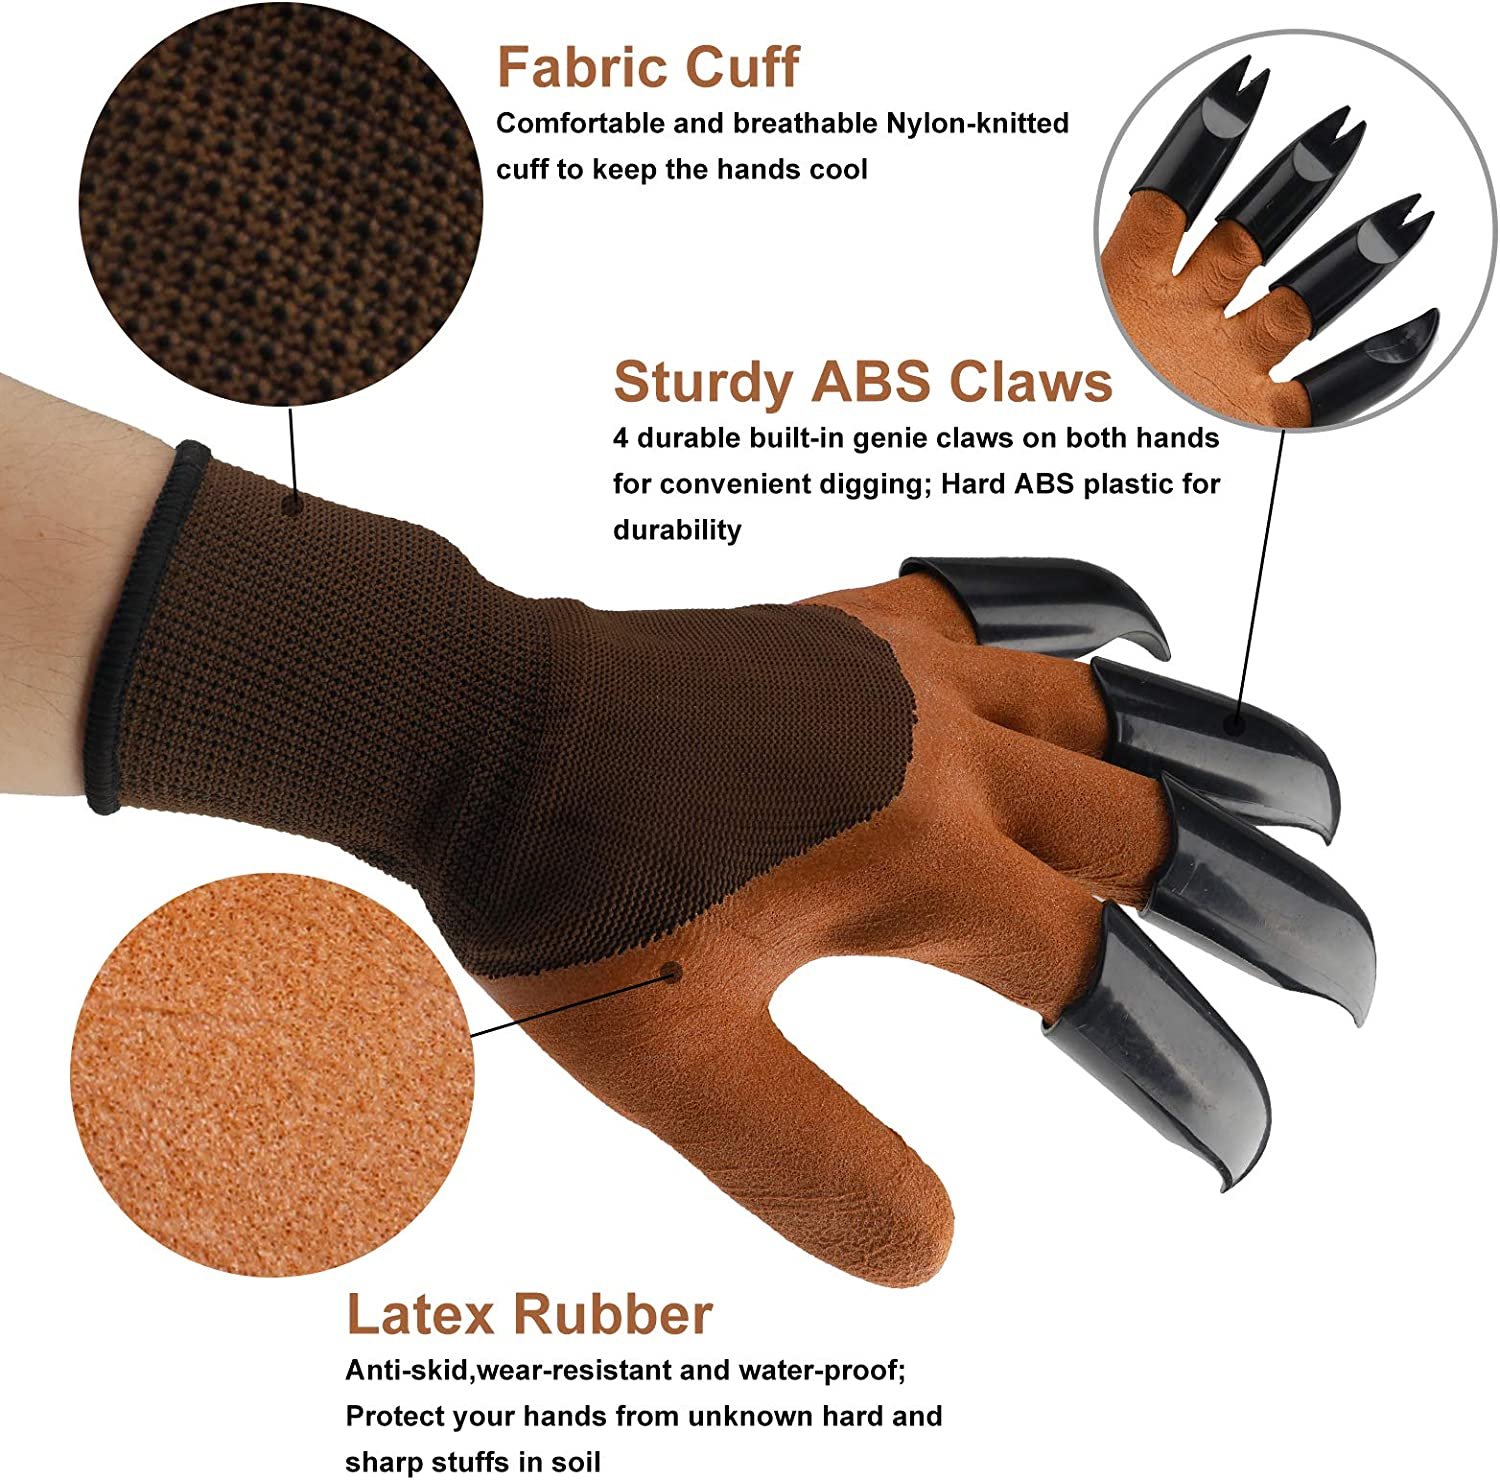 Garden Genie Gloves with Claws, Breathable Waterproof Garden Gloves for Digging and Planting, Breathable, Best Gift for Gardener Brown…